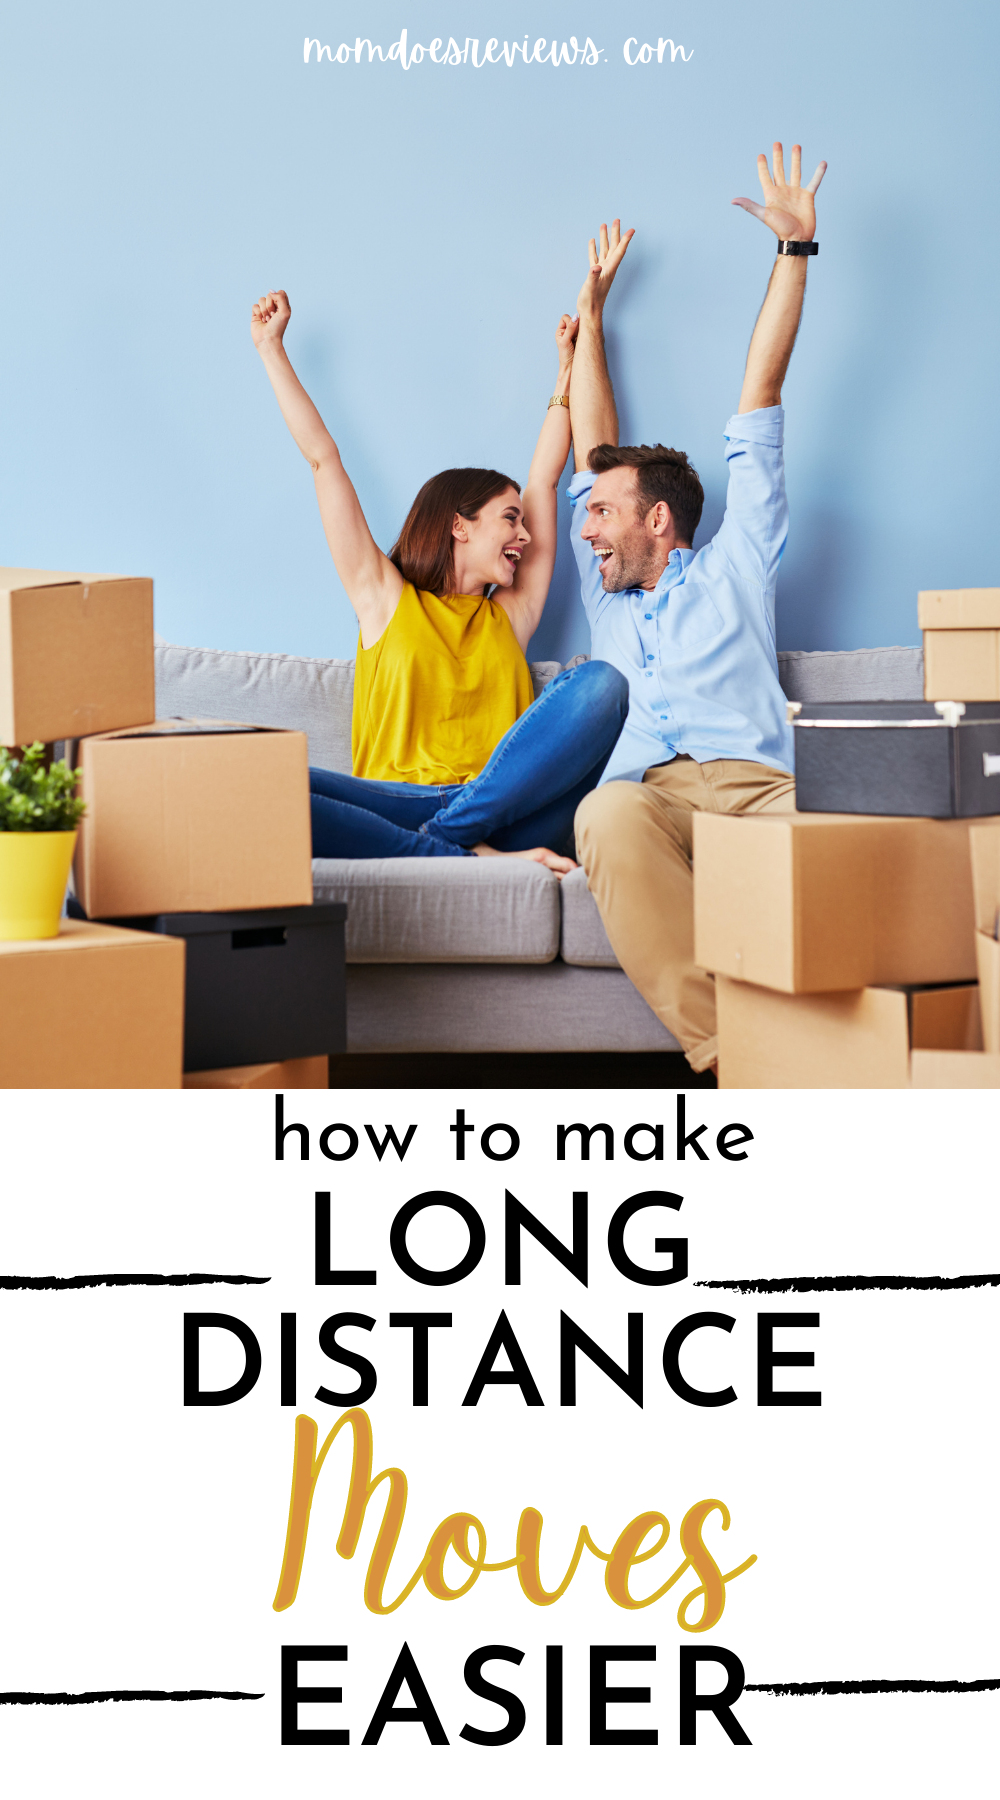 Tips for Making a Long-Distance Move Easier